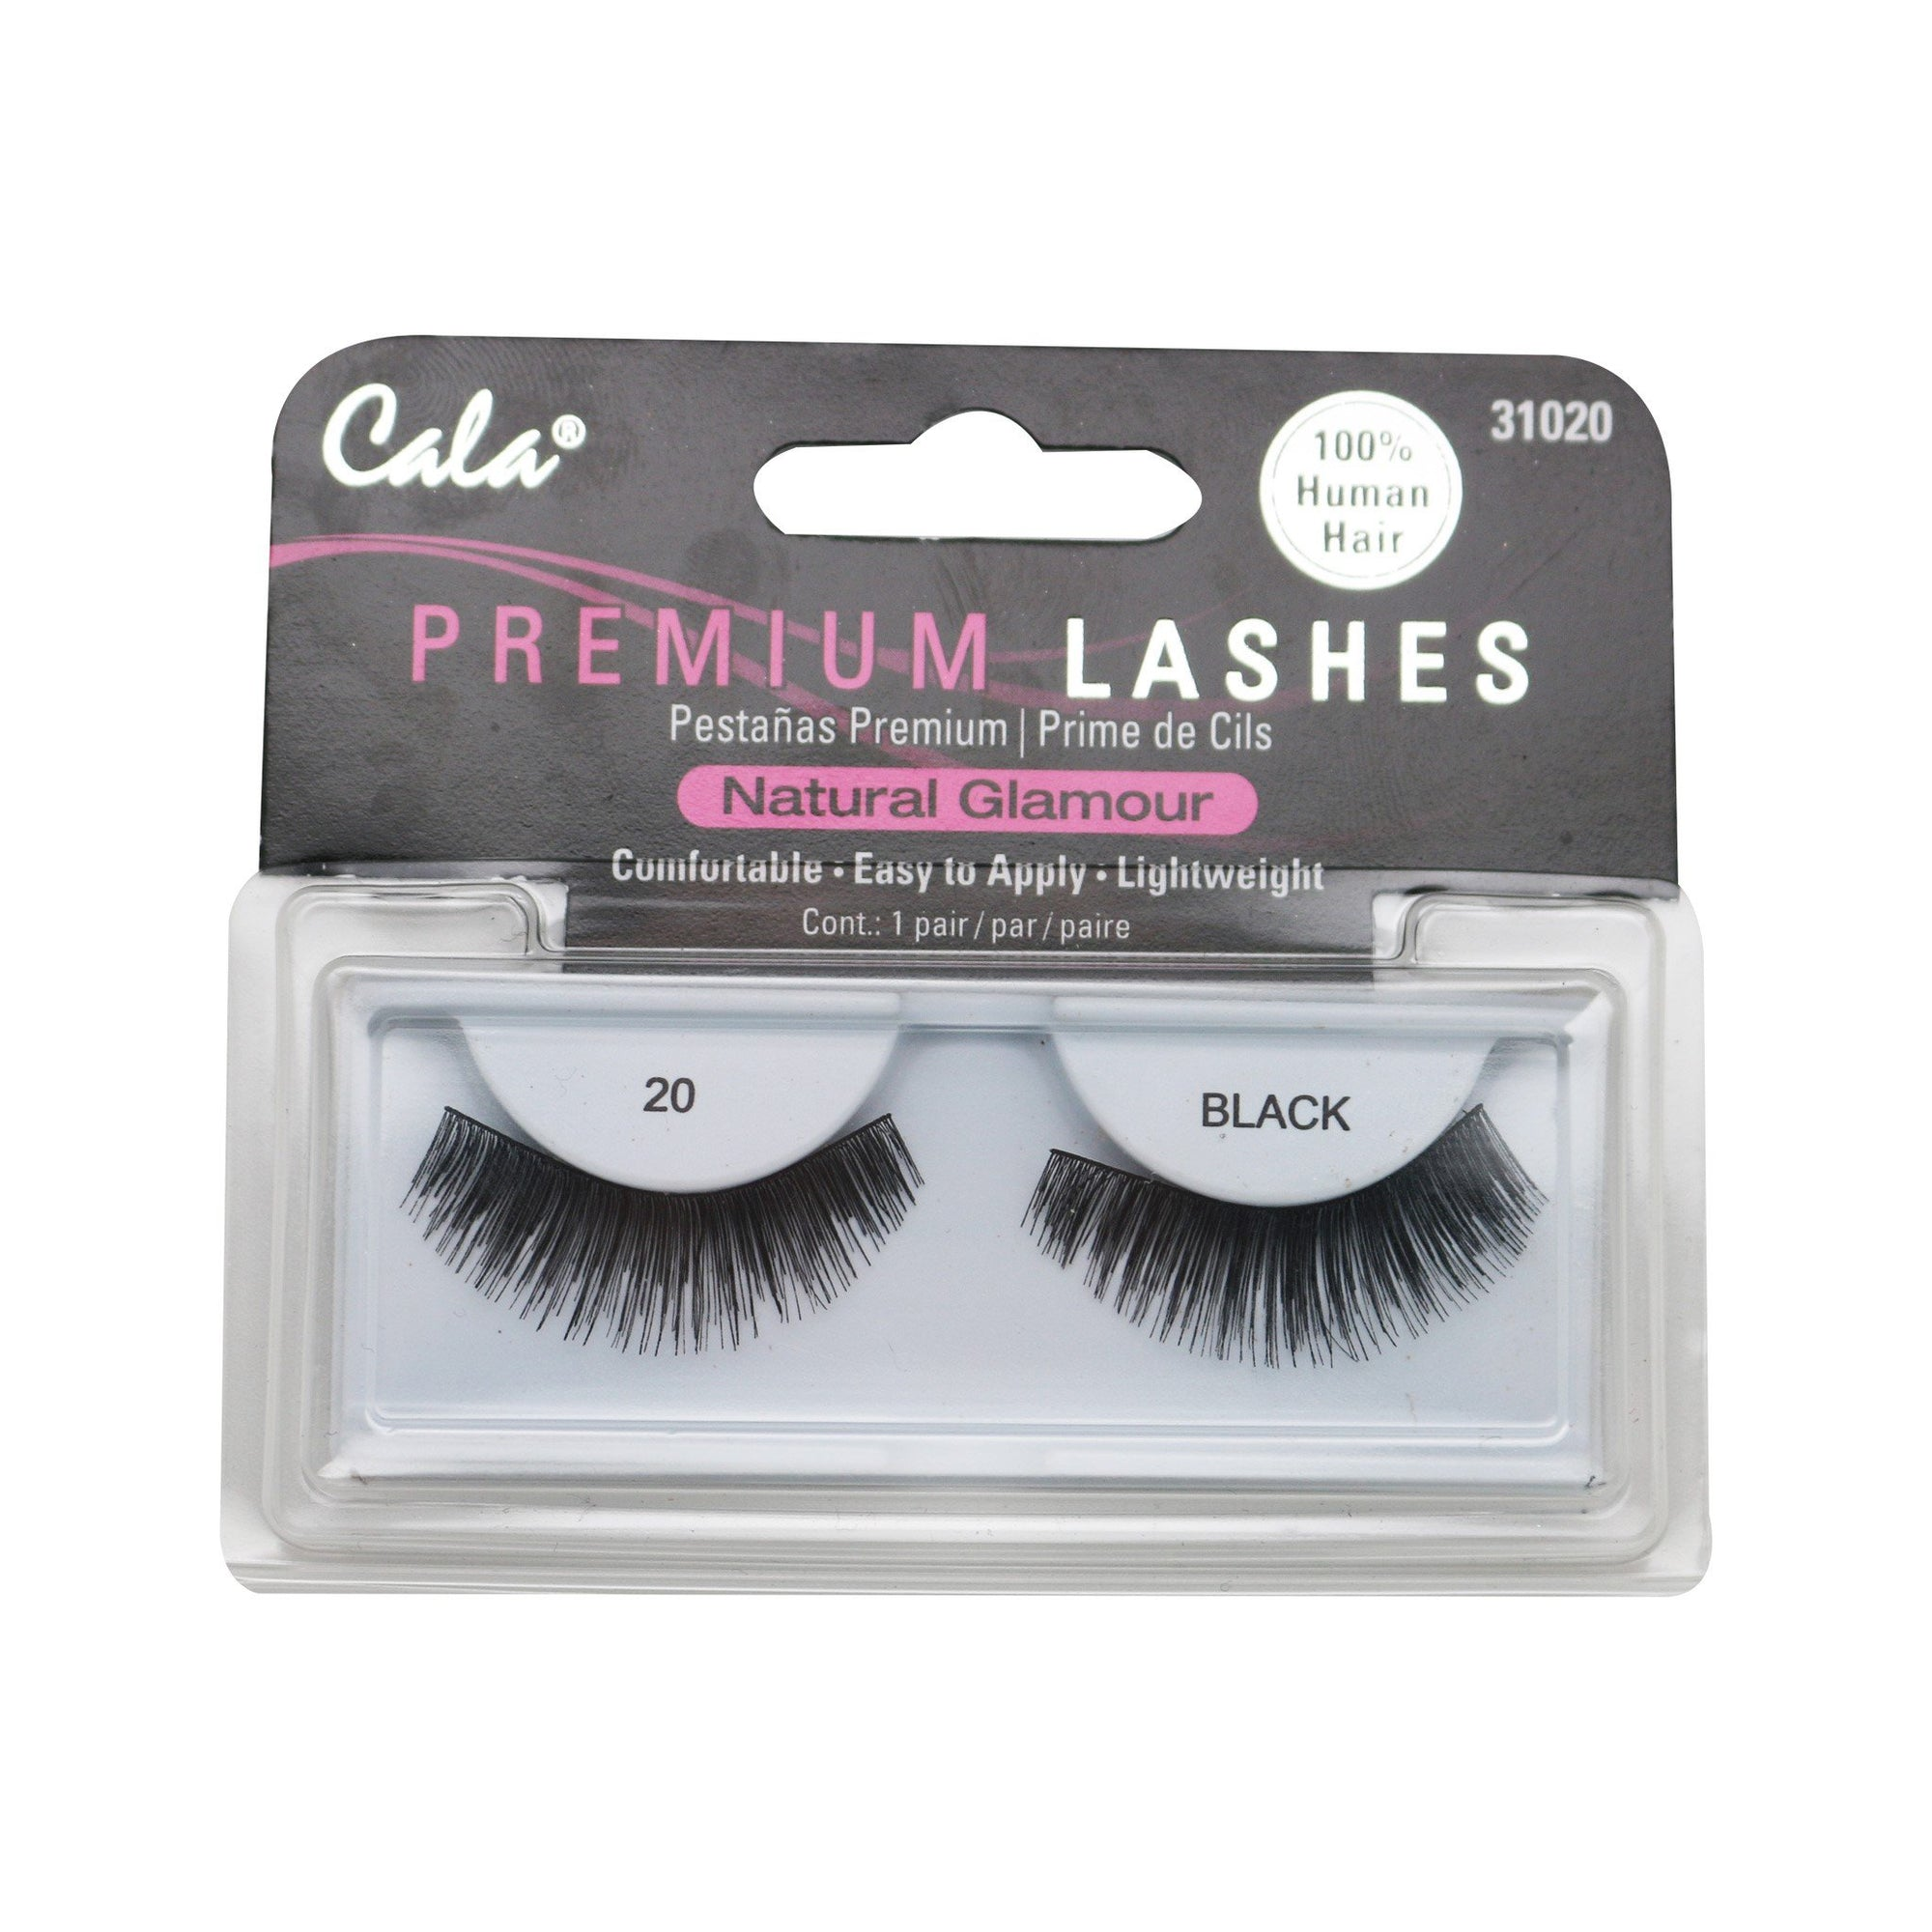 Cala Natural Glamour Premium Lashes #20 Black